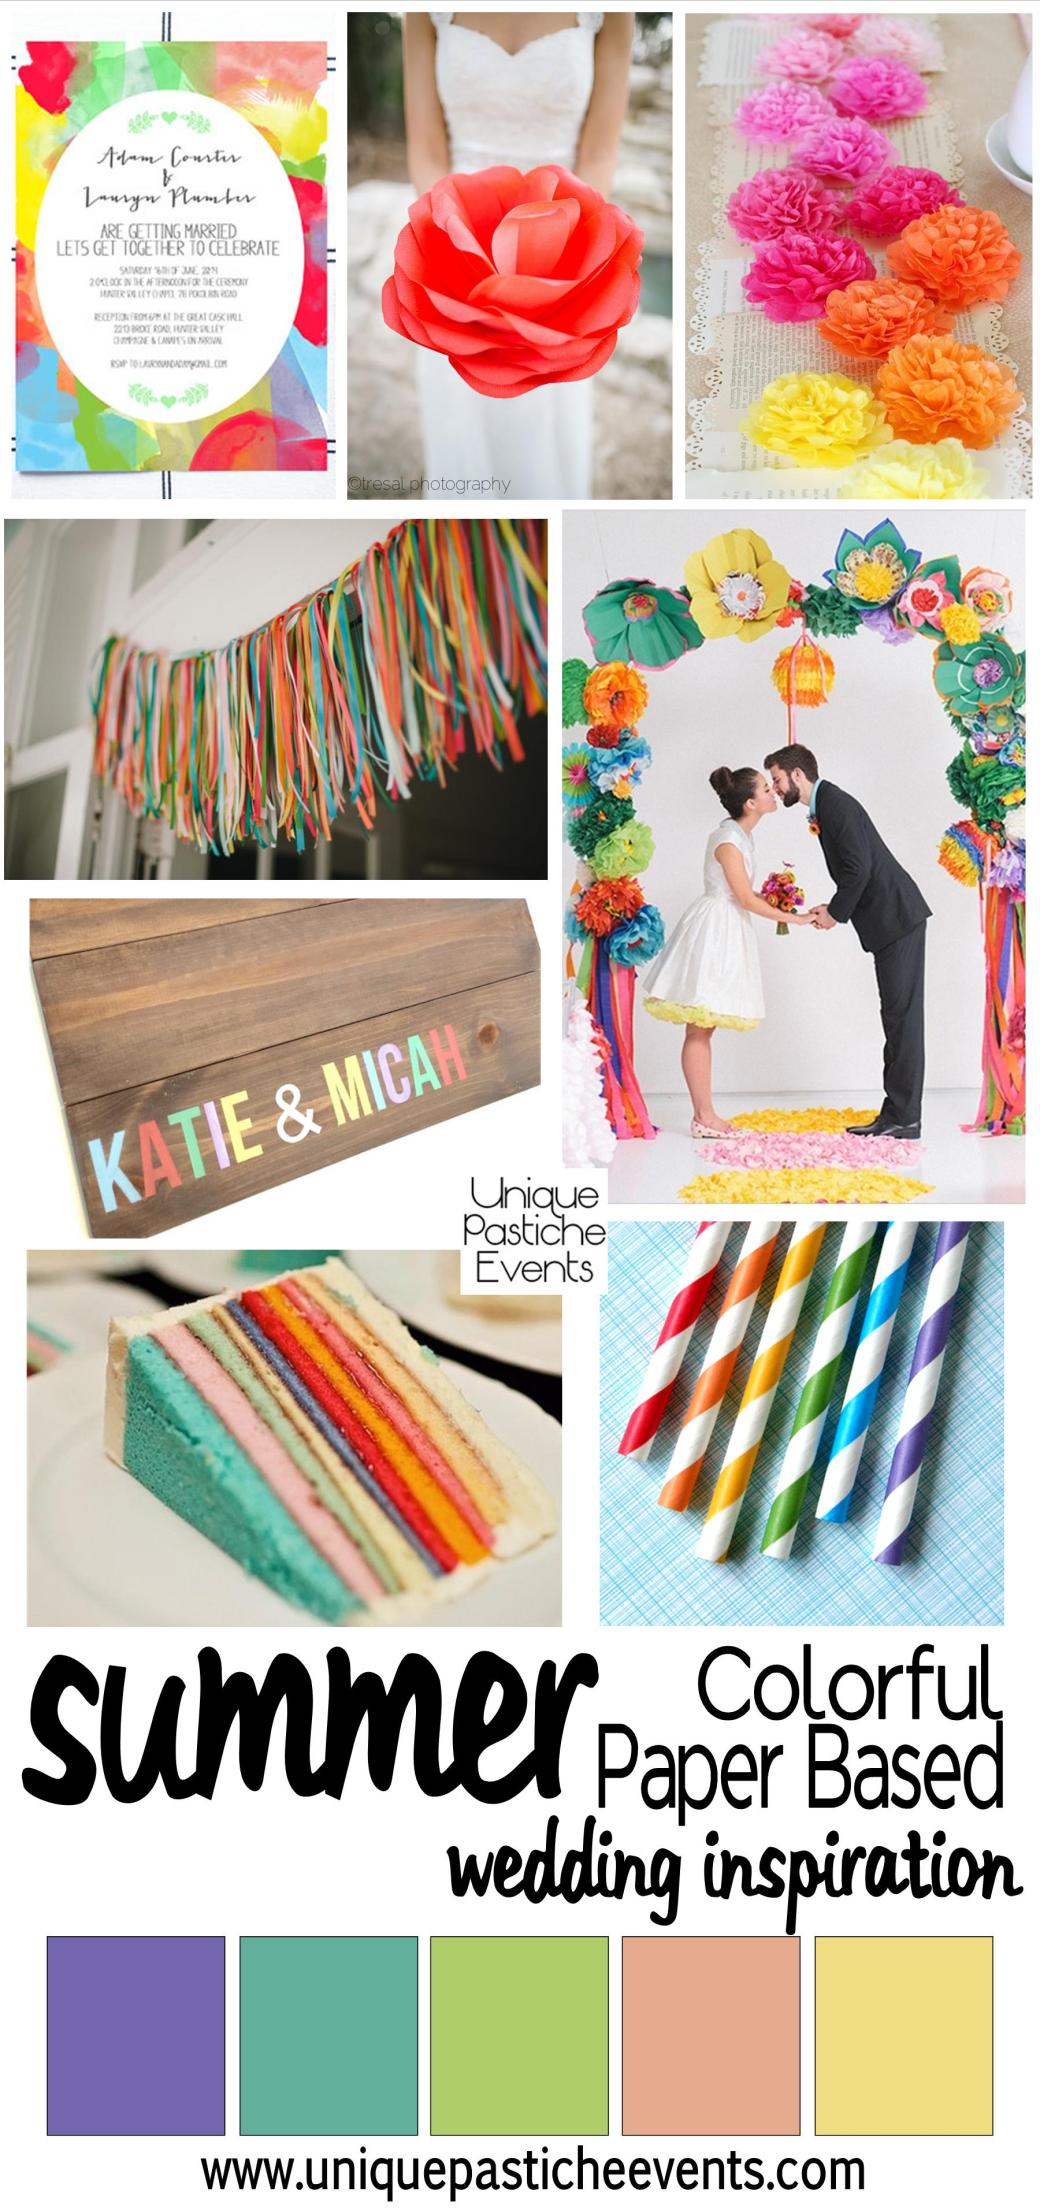 Colorful Paper Based Wedding